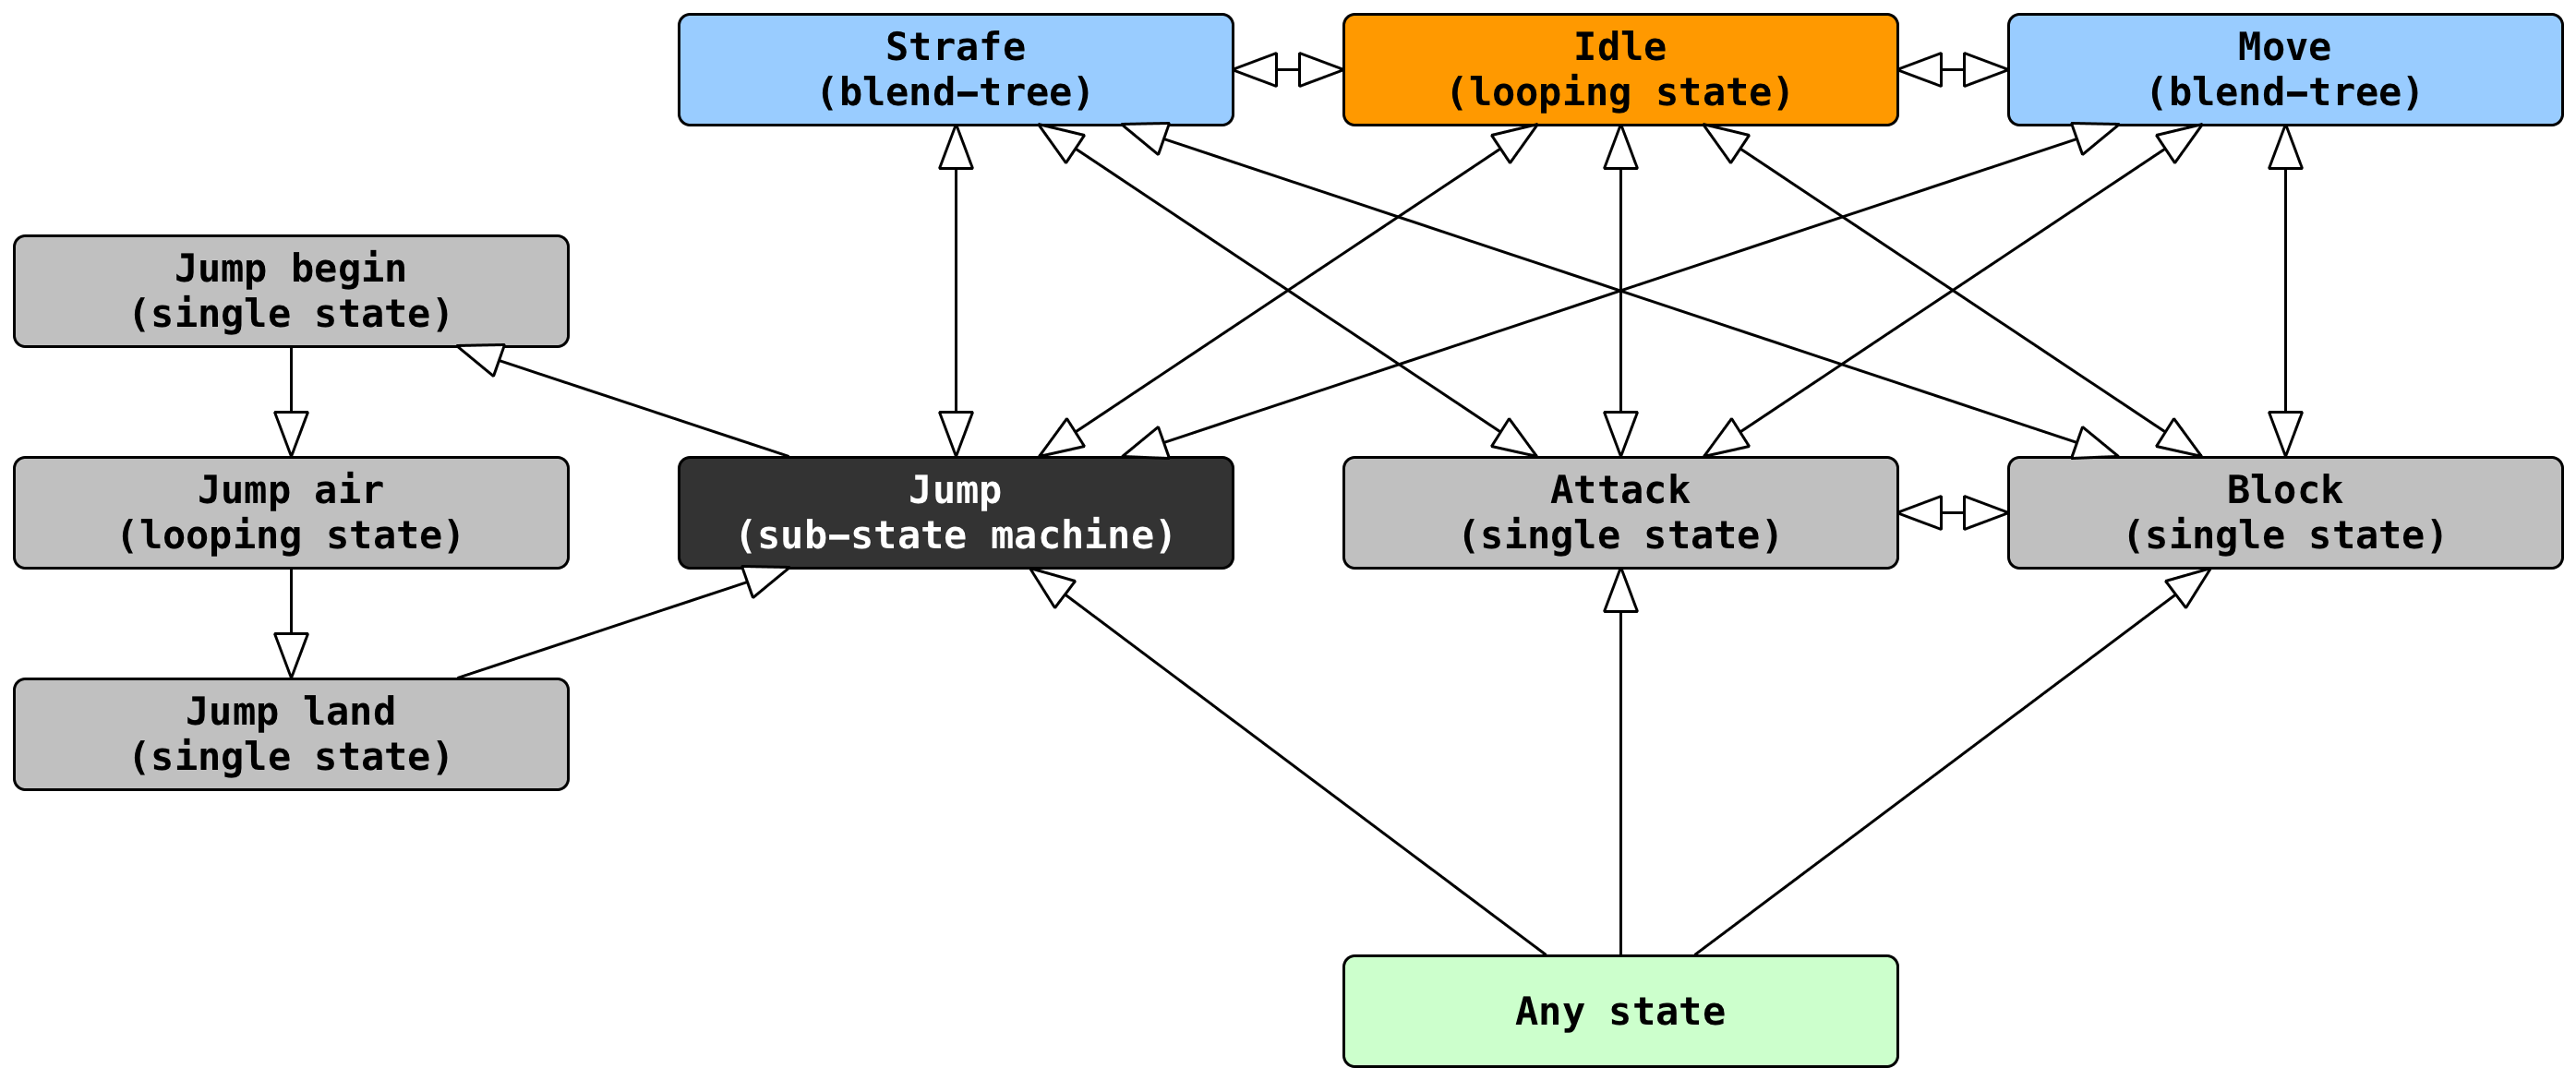 state machine diagram in block wiring for electrical outlets unity when to use a blend tree vs animation